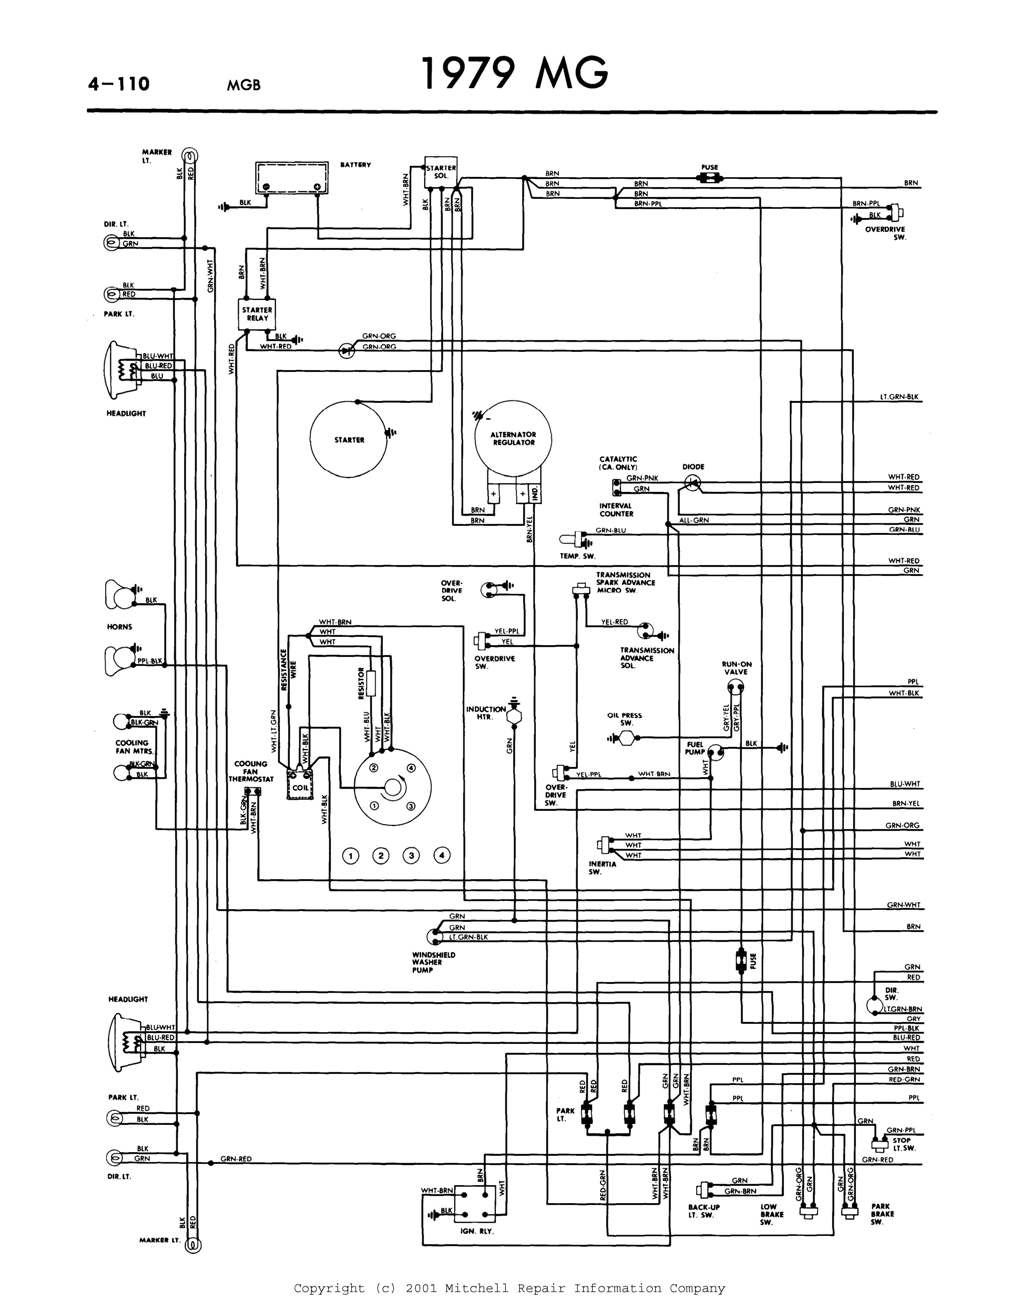 Electronic Ignition Wiring Diagram 73 Corvette 1980 Mg Mgb Diagrams Free For You 1973 Schematics Rh 17 1 Schlaglicht Regional De Amplifier 1976 Electrical